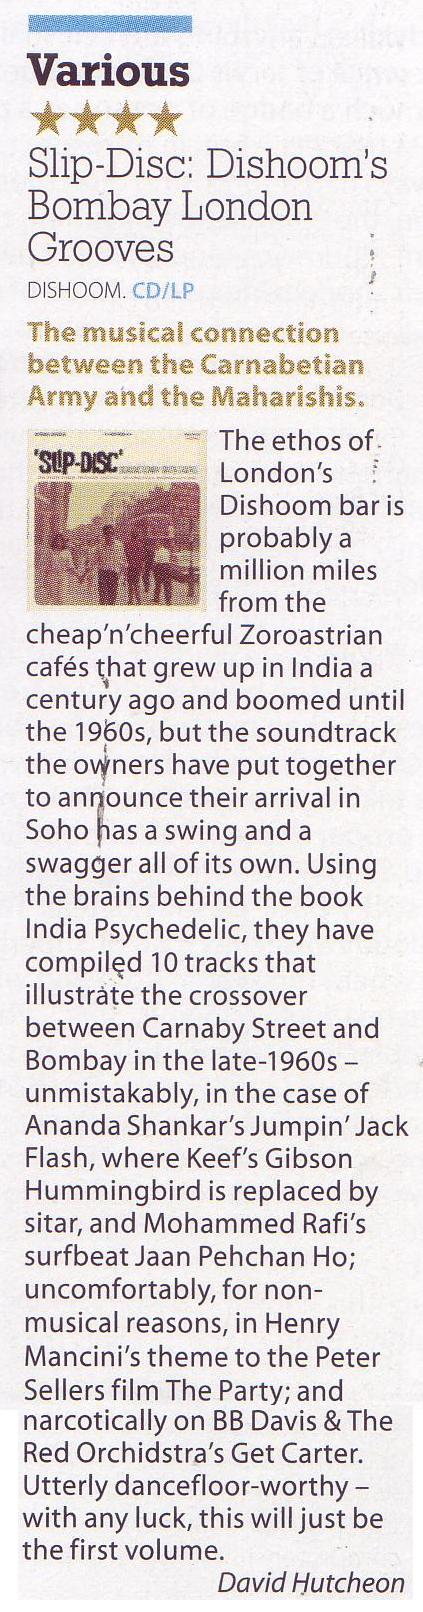 Slip Disc Dishooms Bombay Grooves Mojo January Issue 2016.JPG